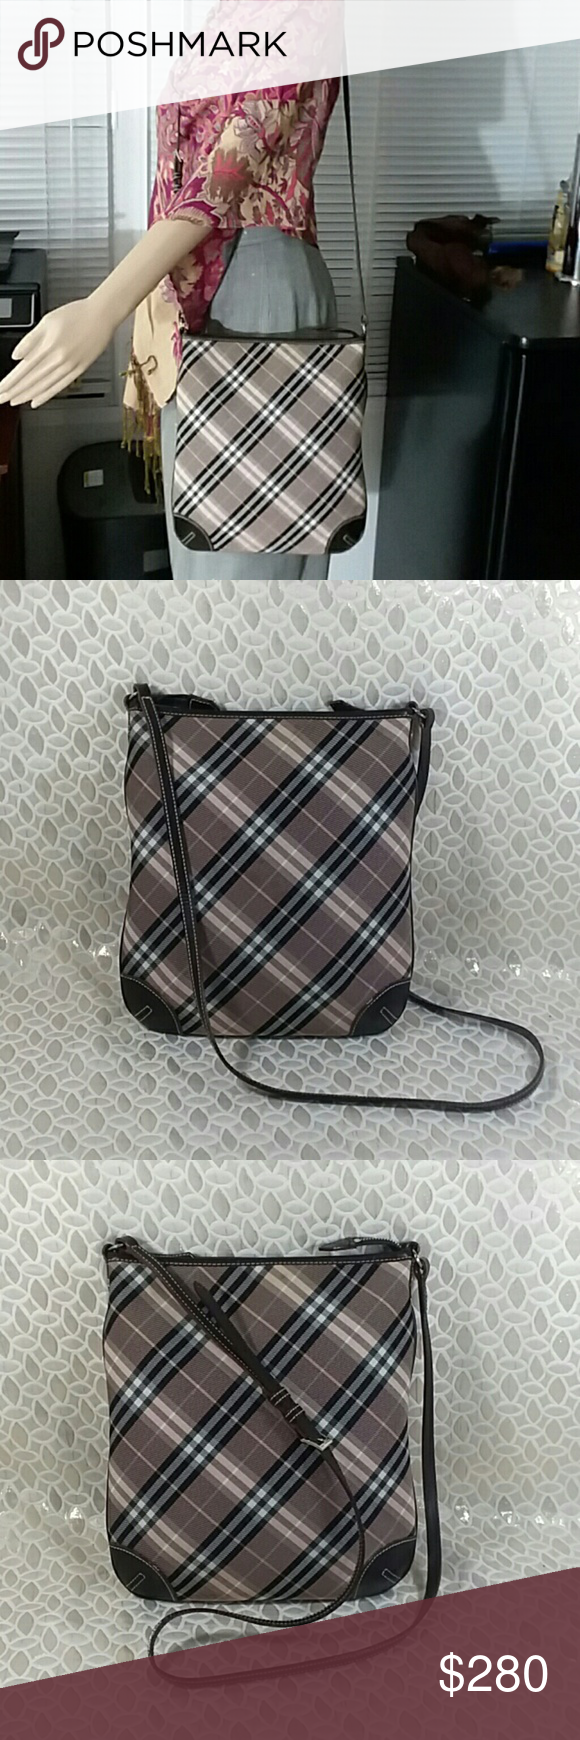 9ae0b3c080a9 Authentic Burberry Blue Label Brown Canvas Bag. The bag was made in Japan  with a serial number 01110 05 YDM and is in a good condition.